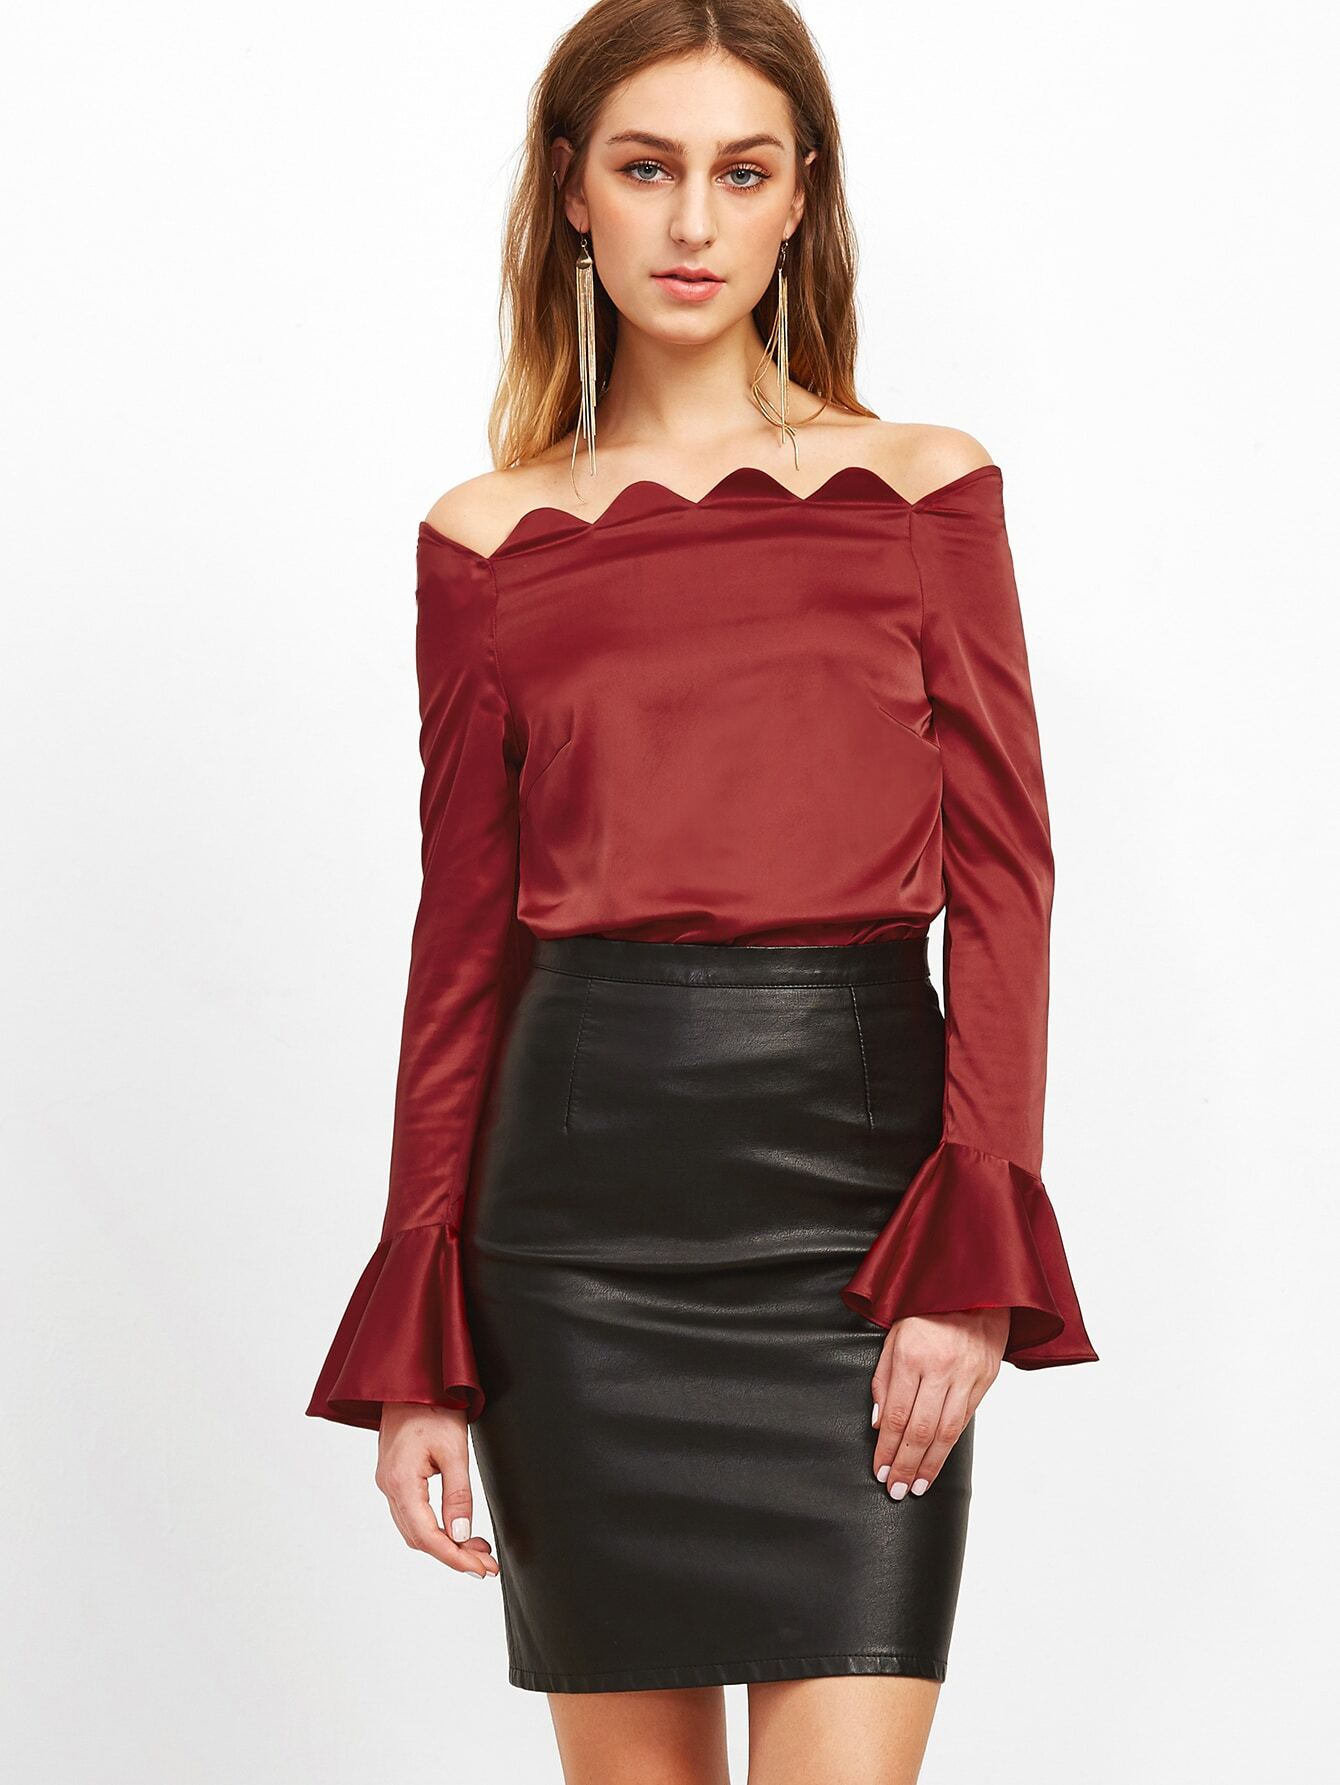 Burgundy Scallop Off The Shoulder Bell Cuff Silky Top blouse161010702